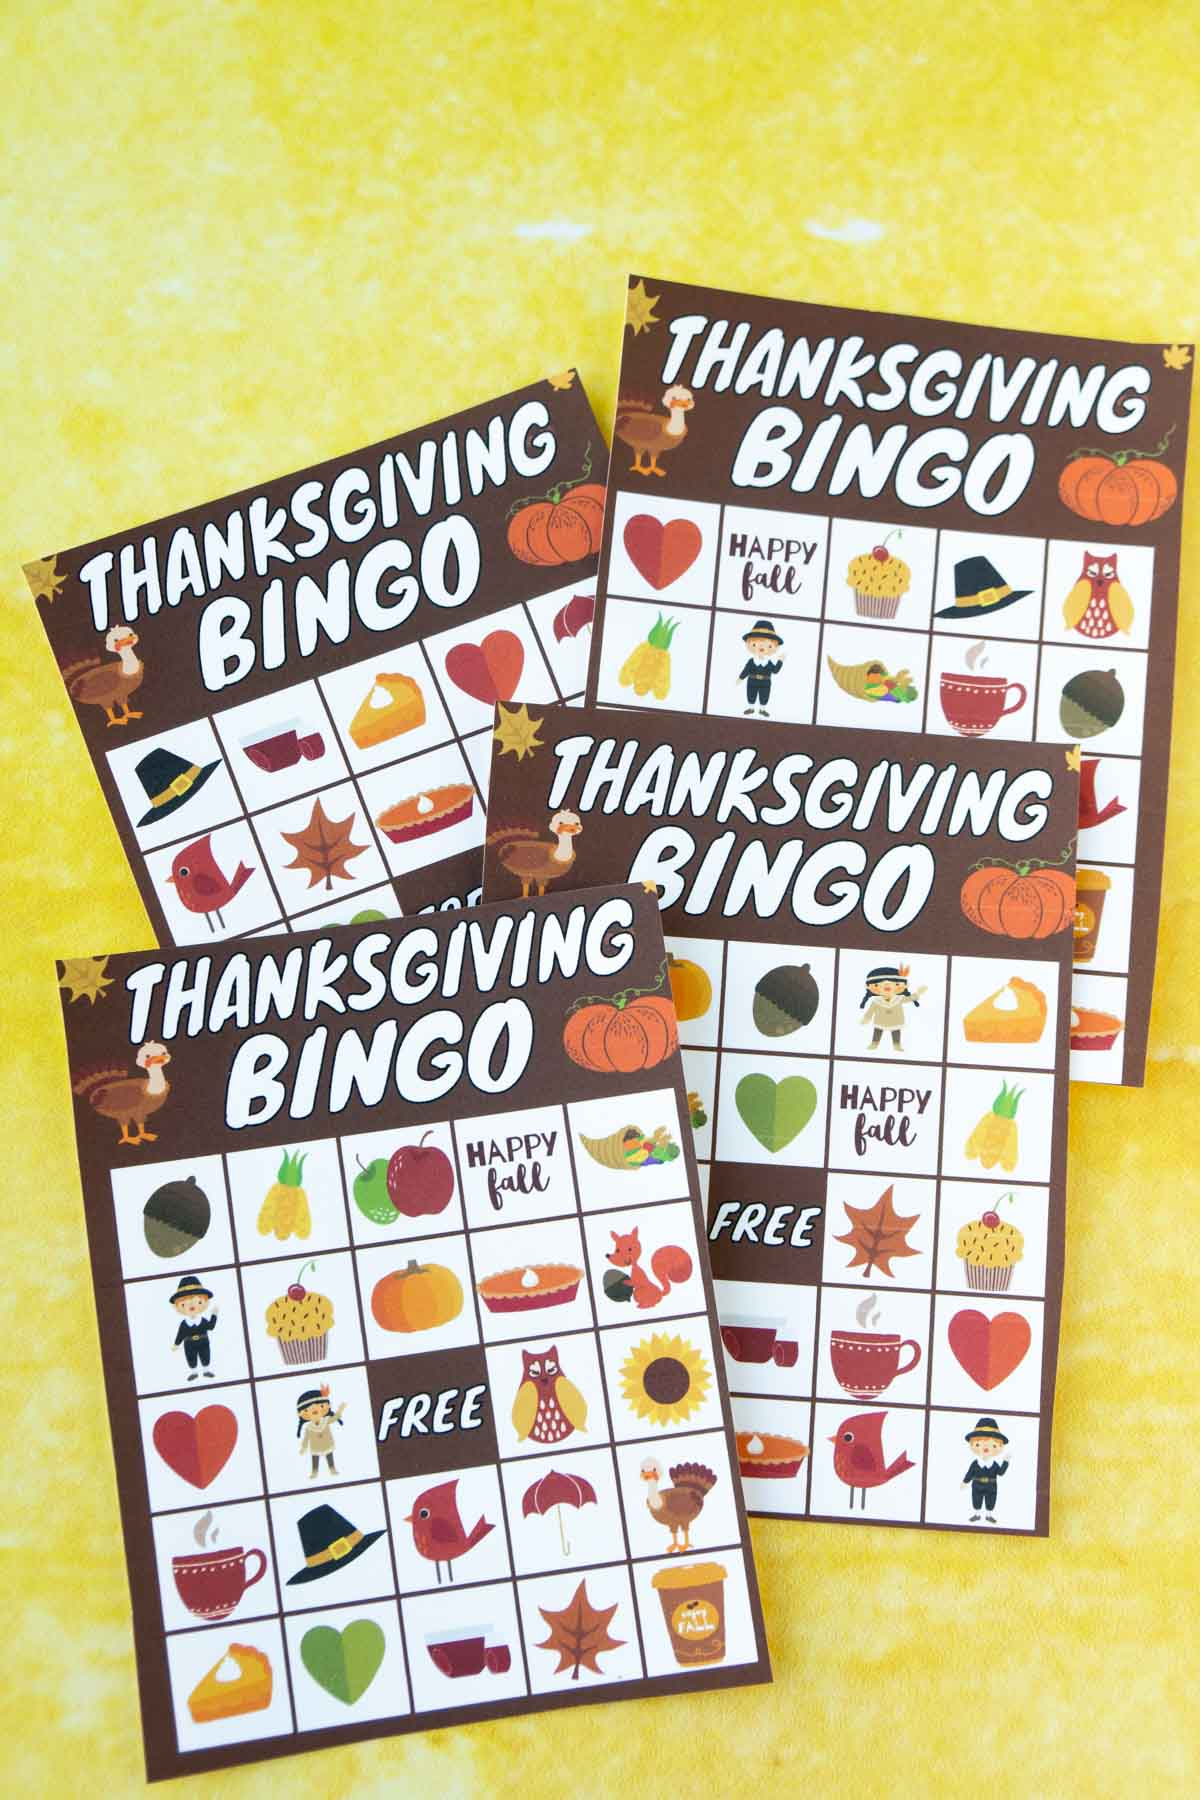 Four Thanksgiving bingo cards on a yellow background